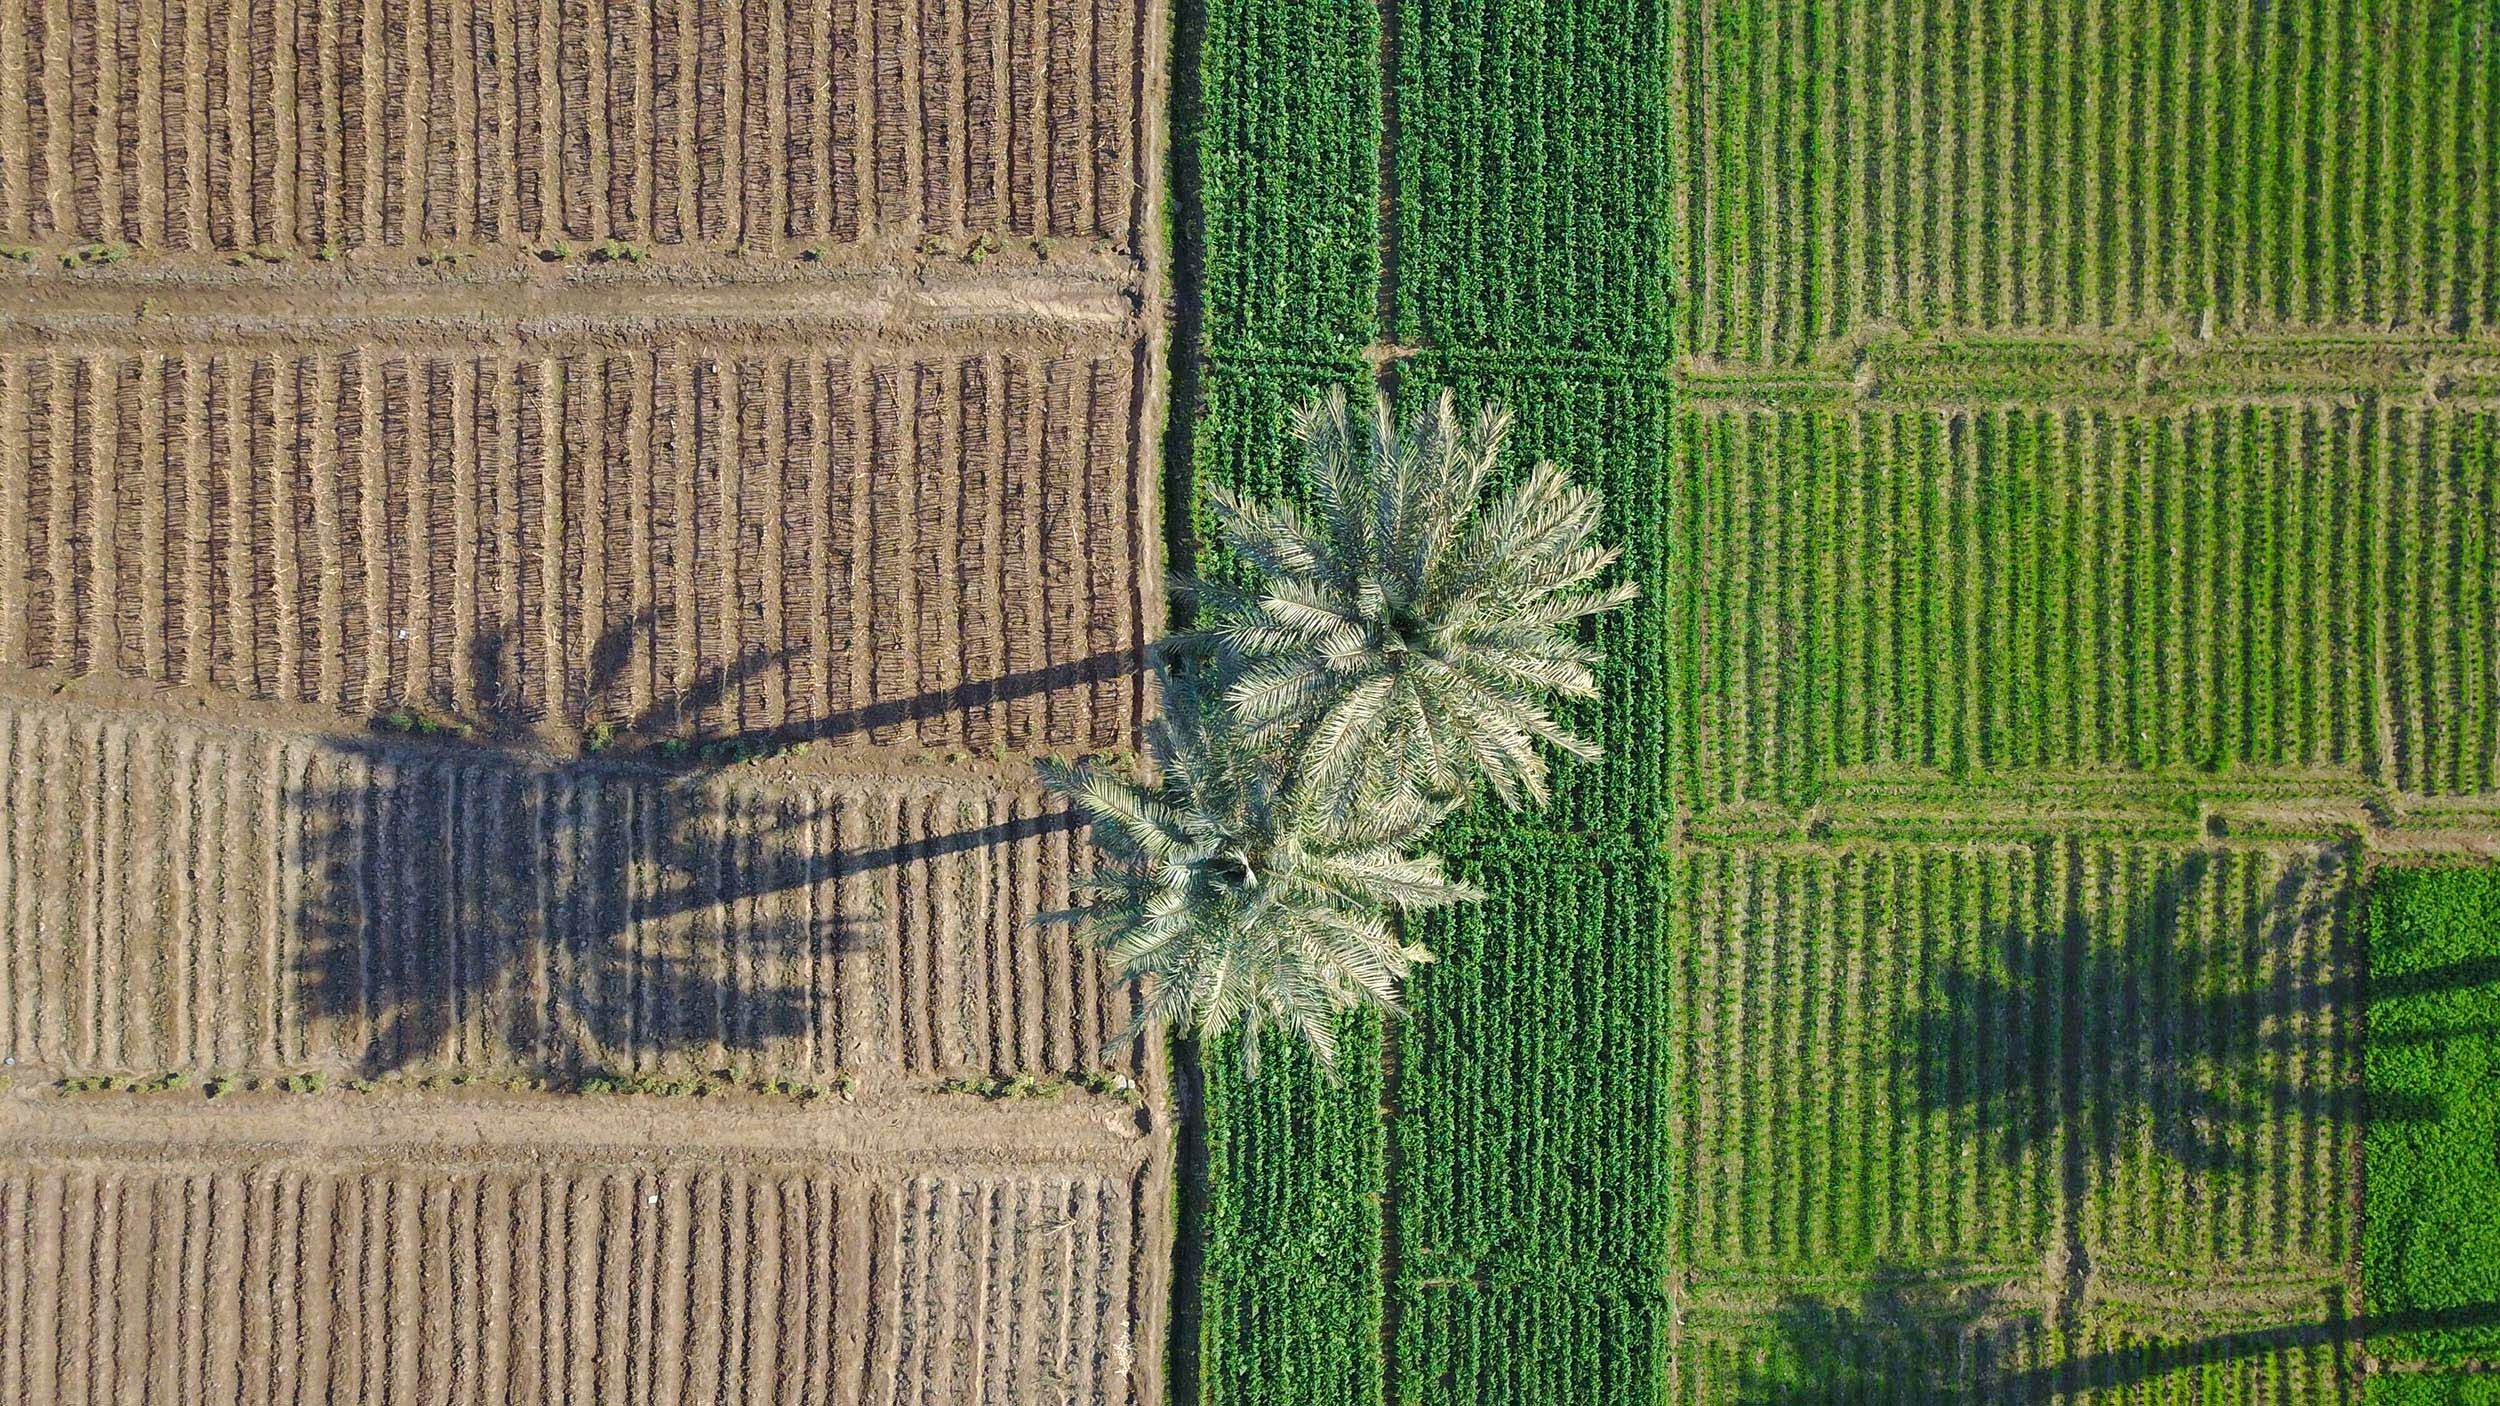 """Half and Half' by Hashem Abdou. Pairs of palm trees cast shadows on multi-colored landscape."